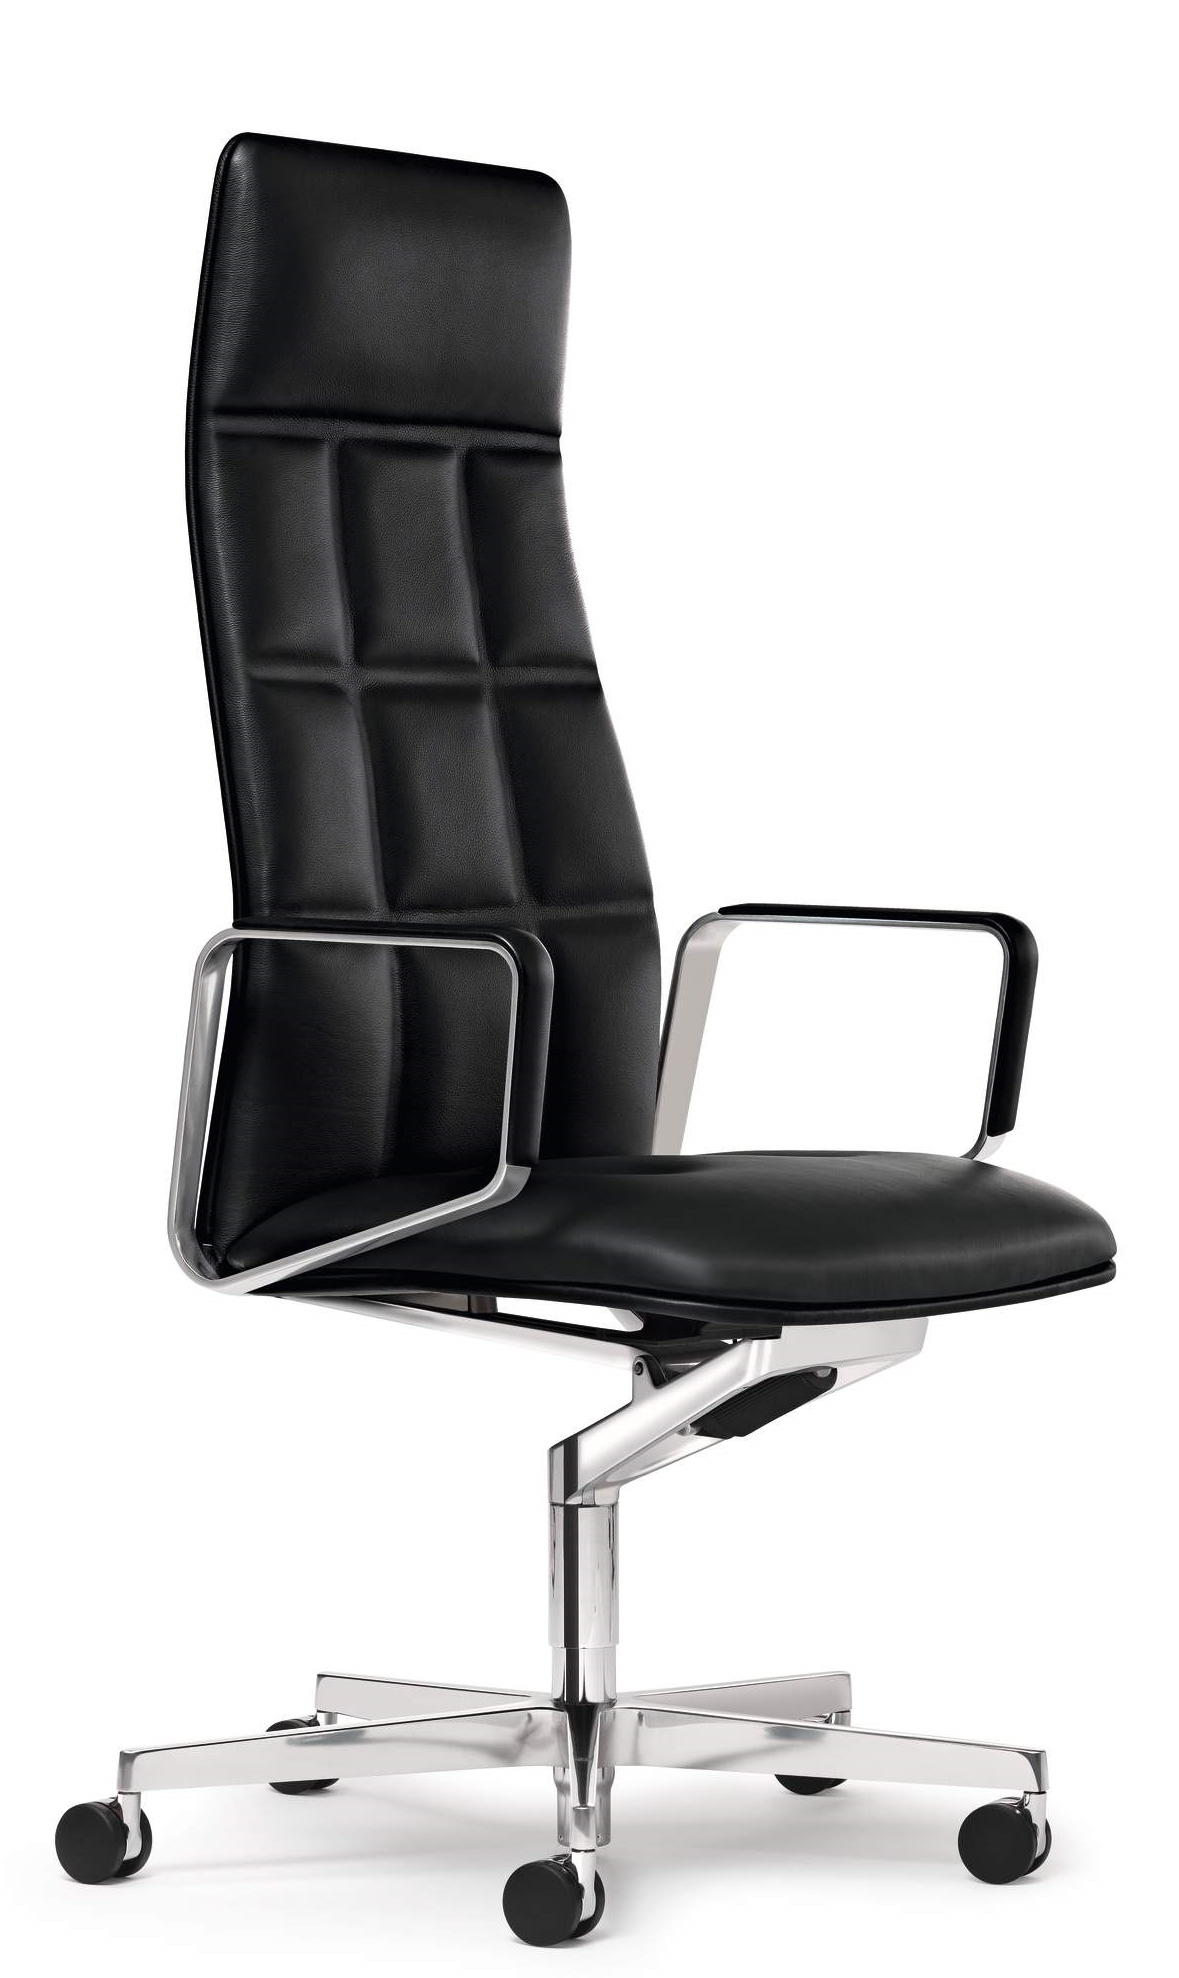 Leadchair Executive Swivel chair / Office Swivel chair Walter Knoll